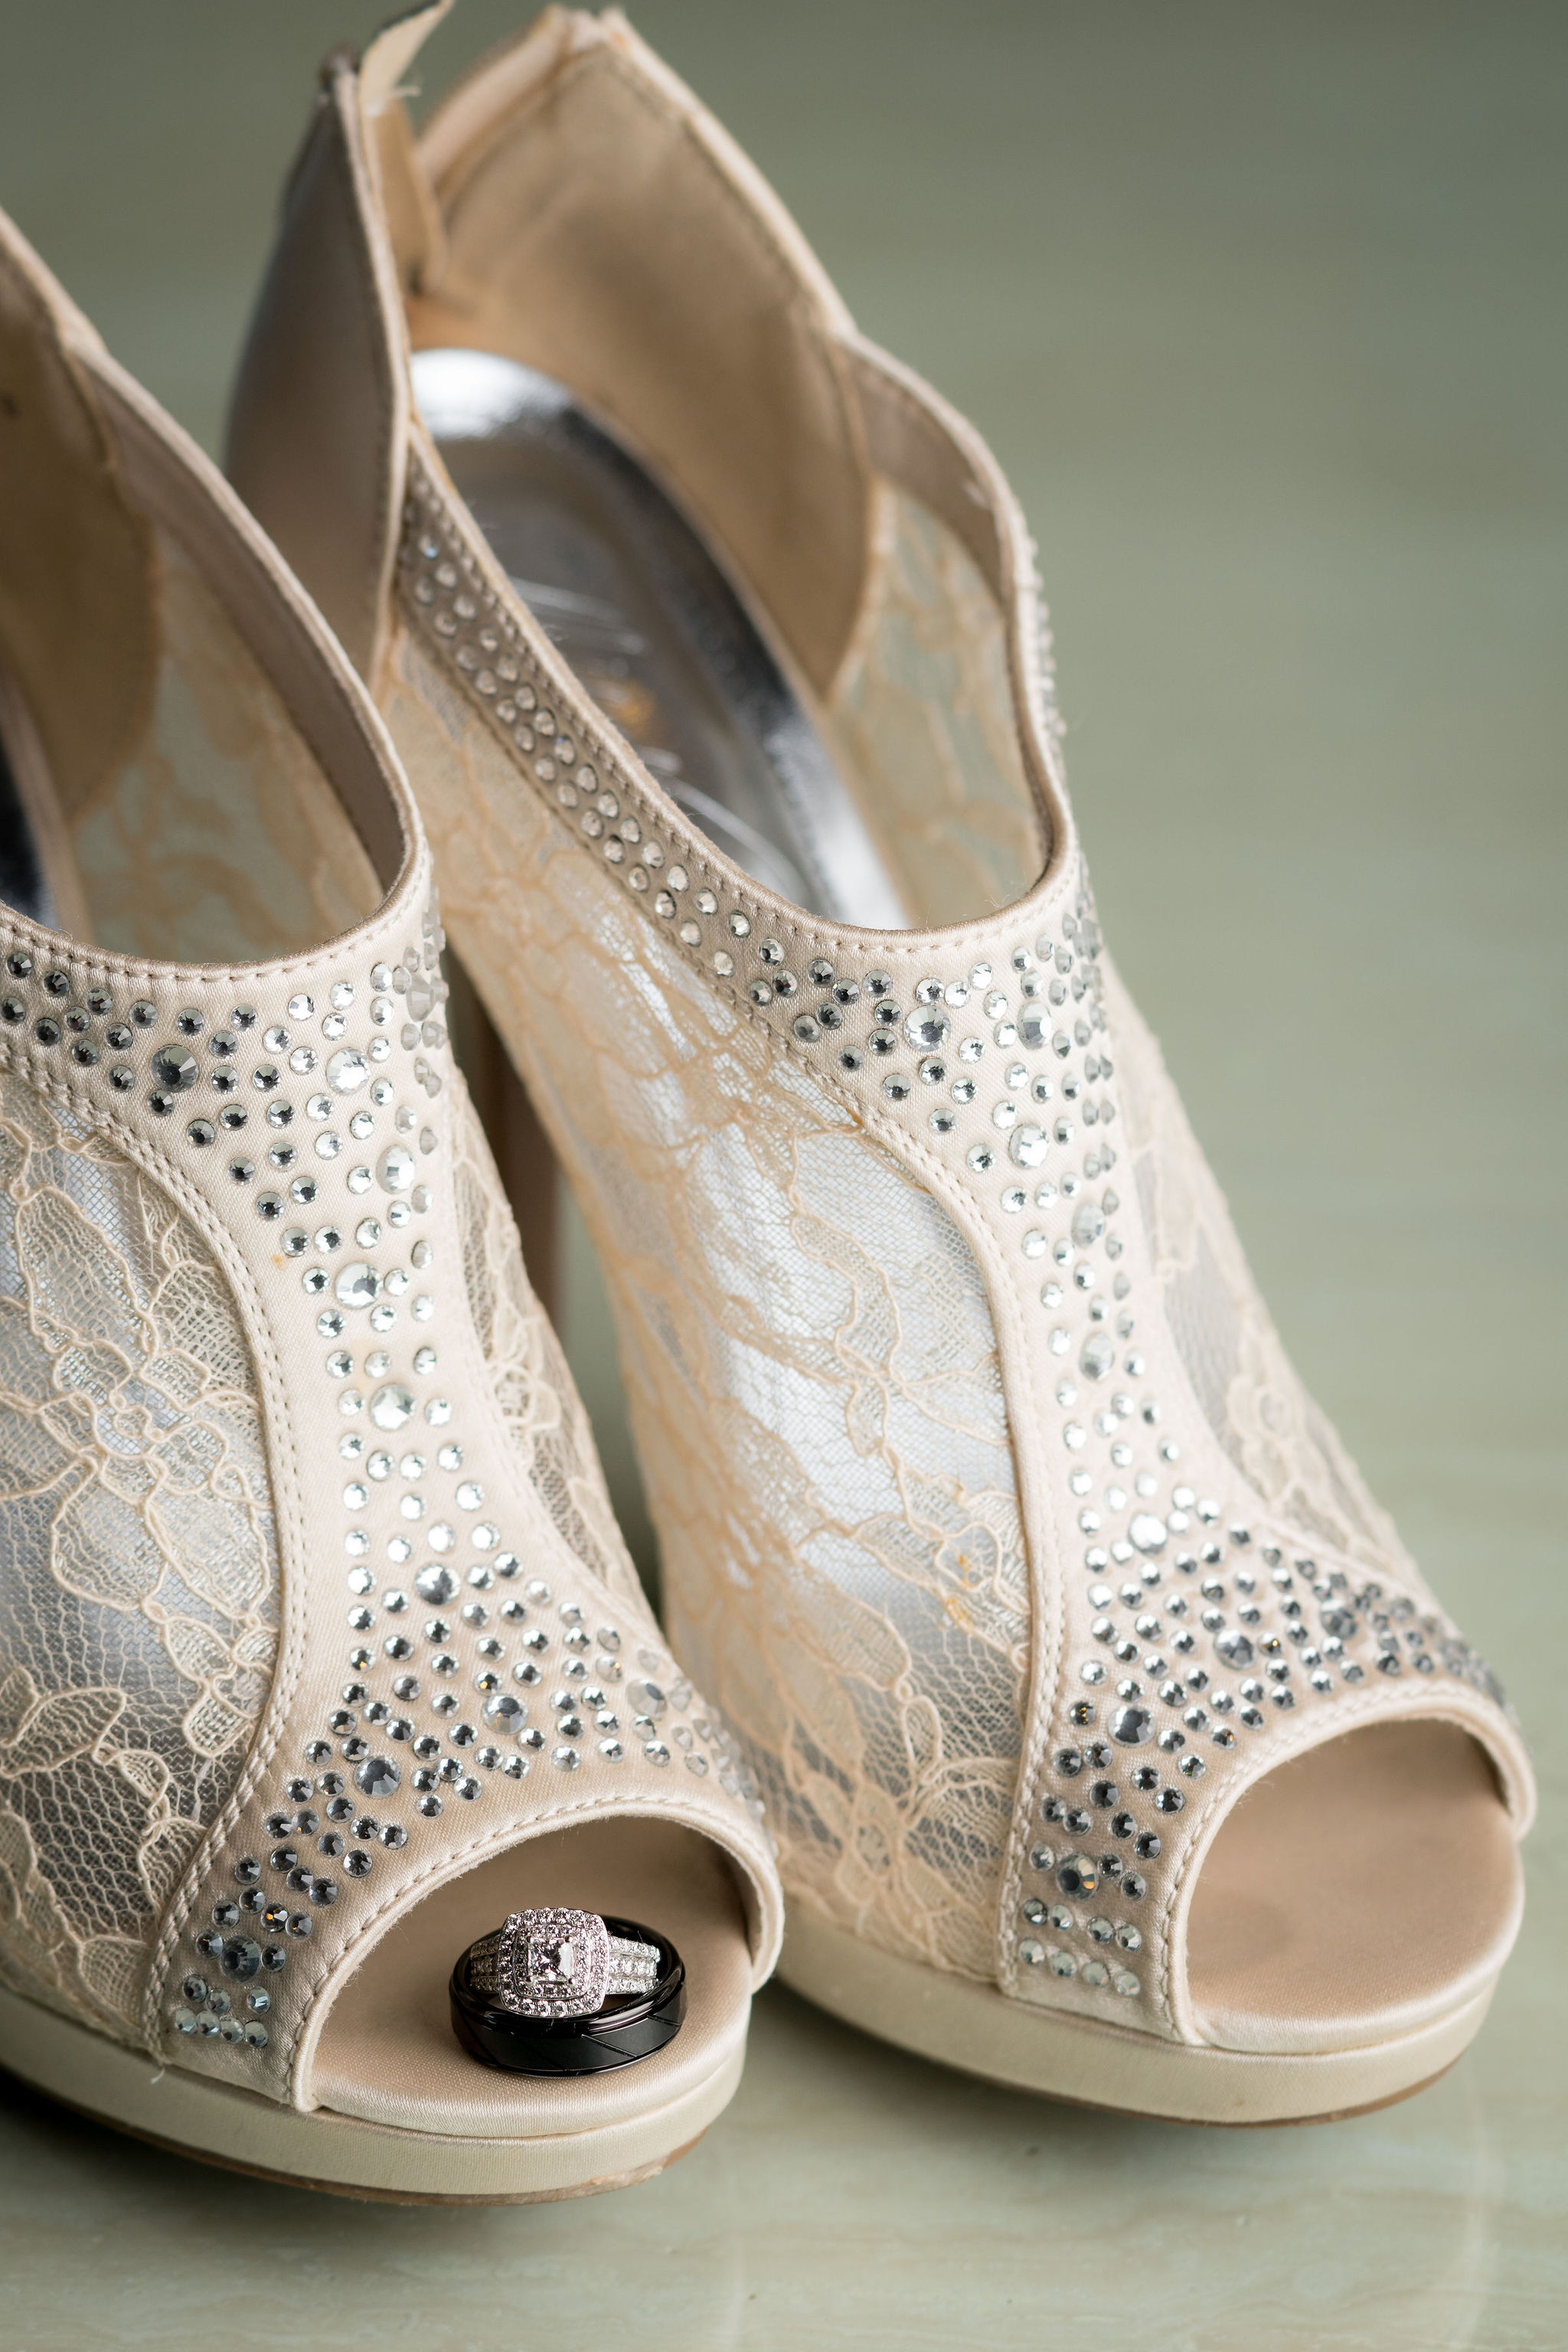 Wedding ring in bride's shoes for detail shot.